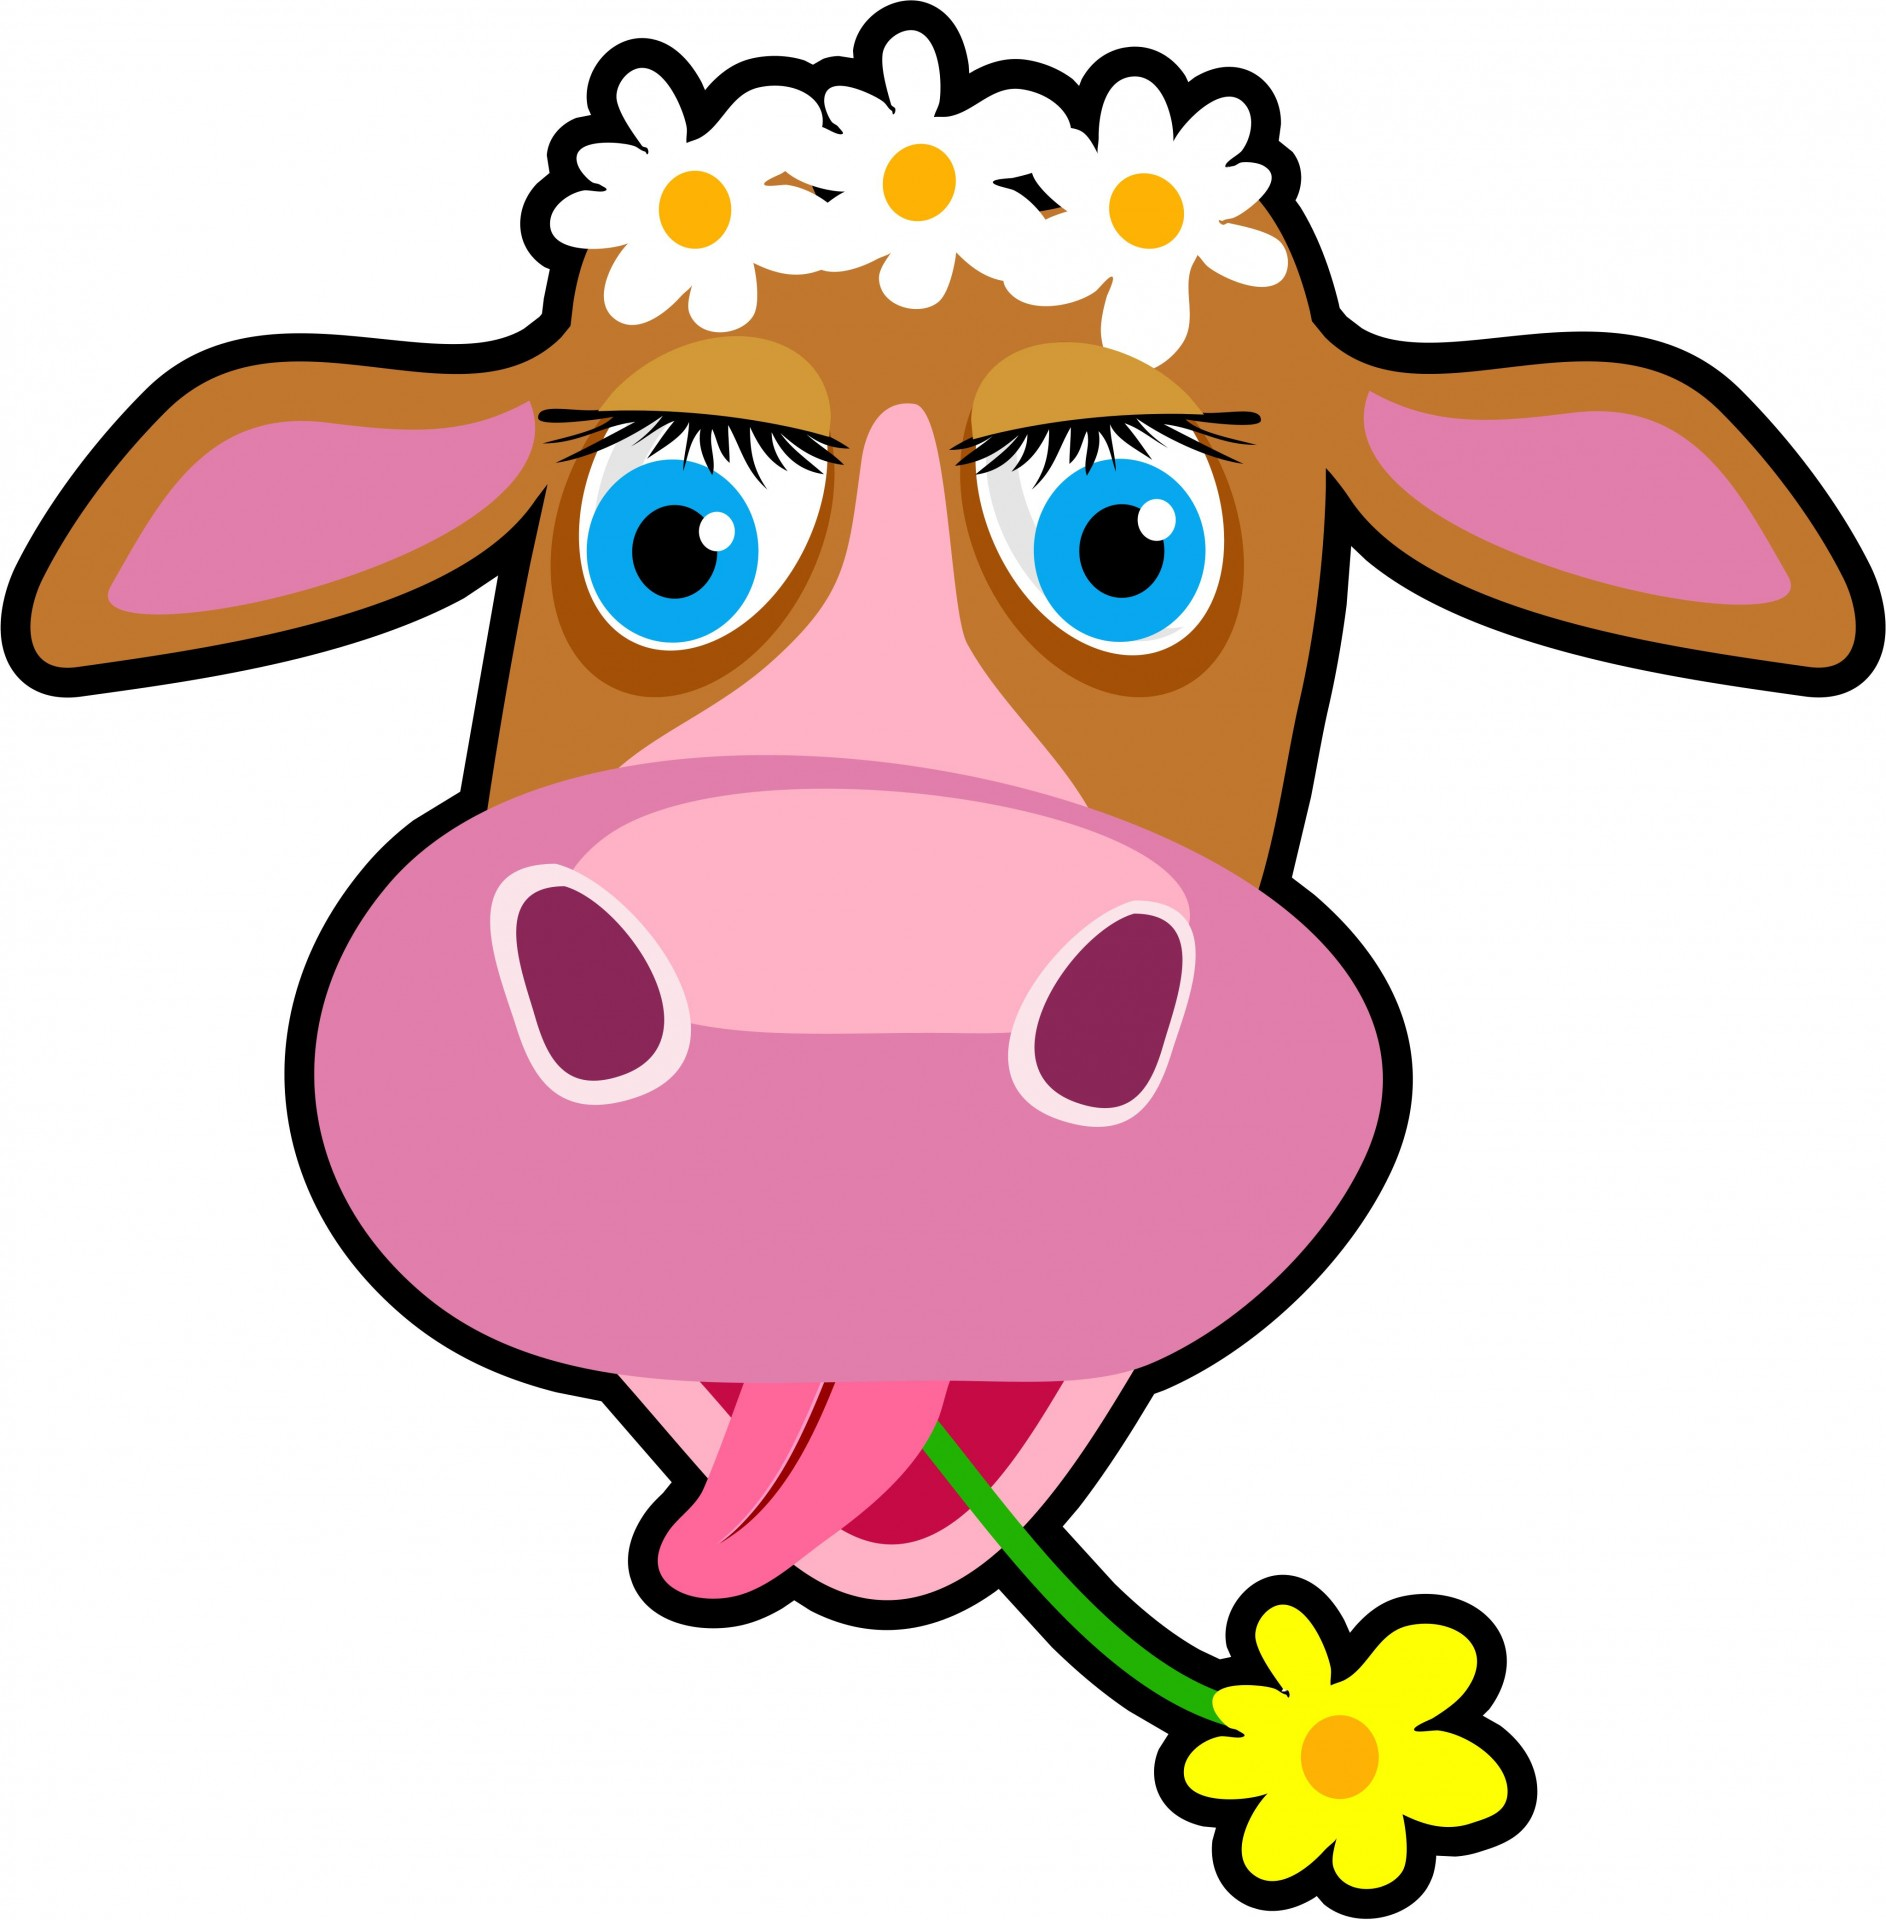 1886x1920 Cow Clipart Transparent Background Pencil And In Color Cow